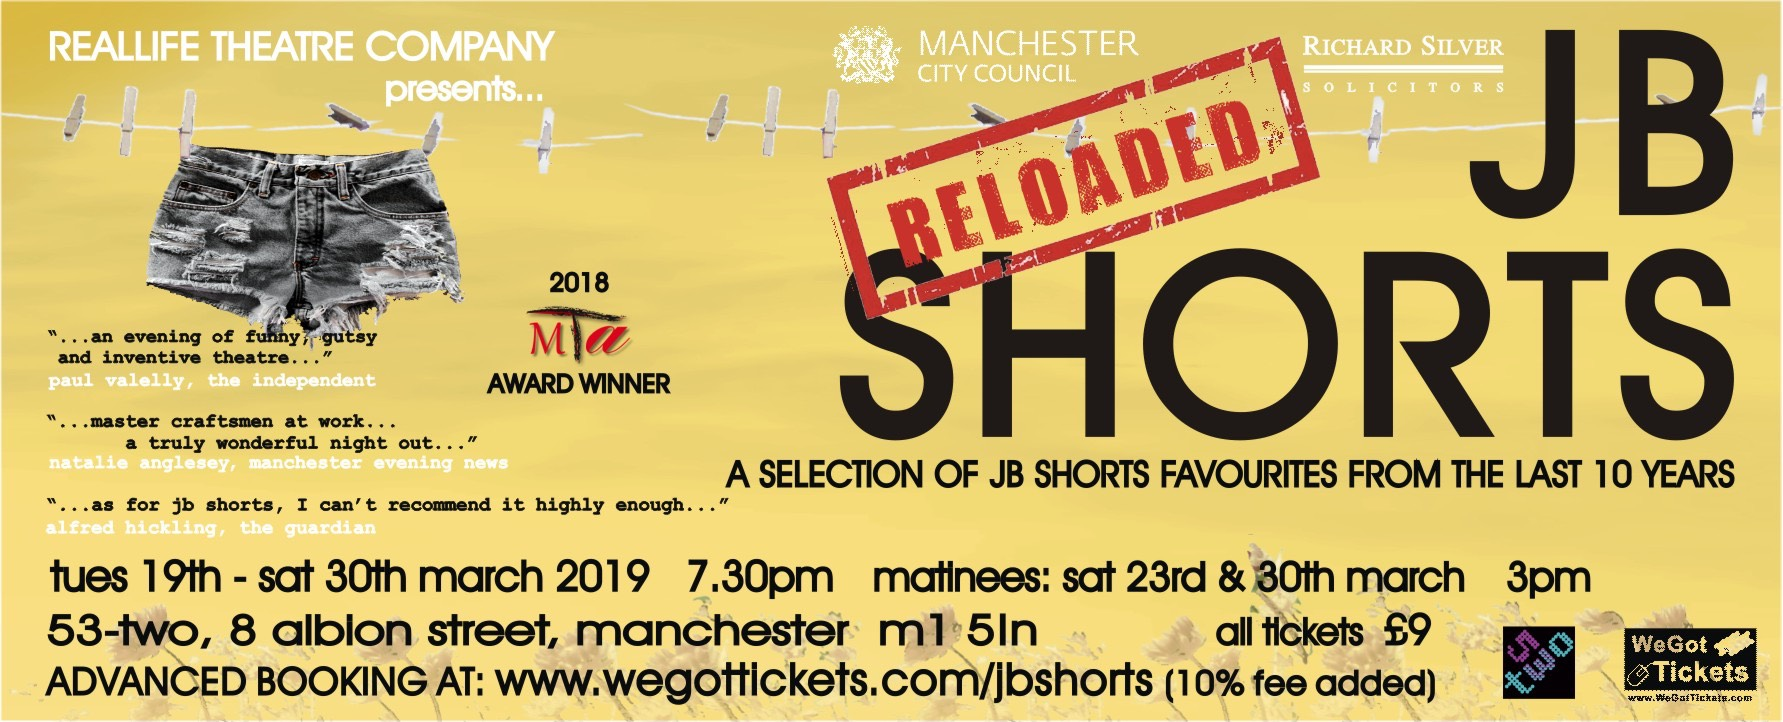 JB Shorts Reloaded Poster